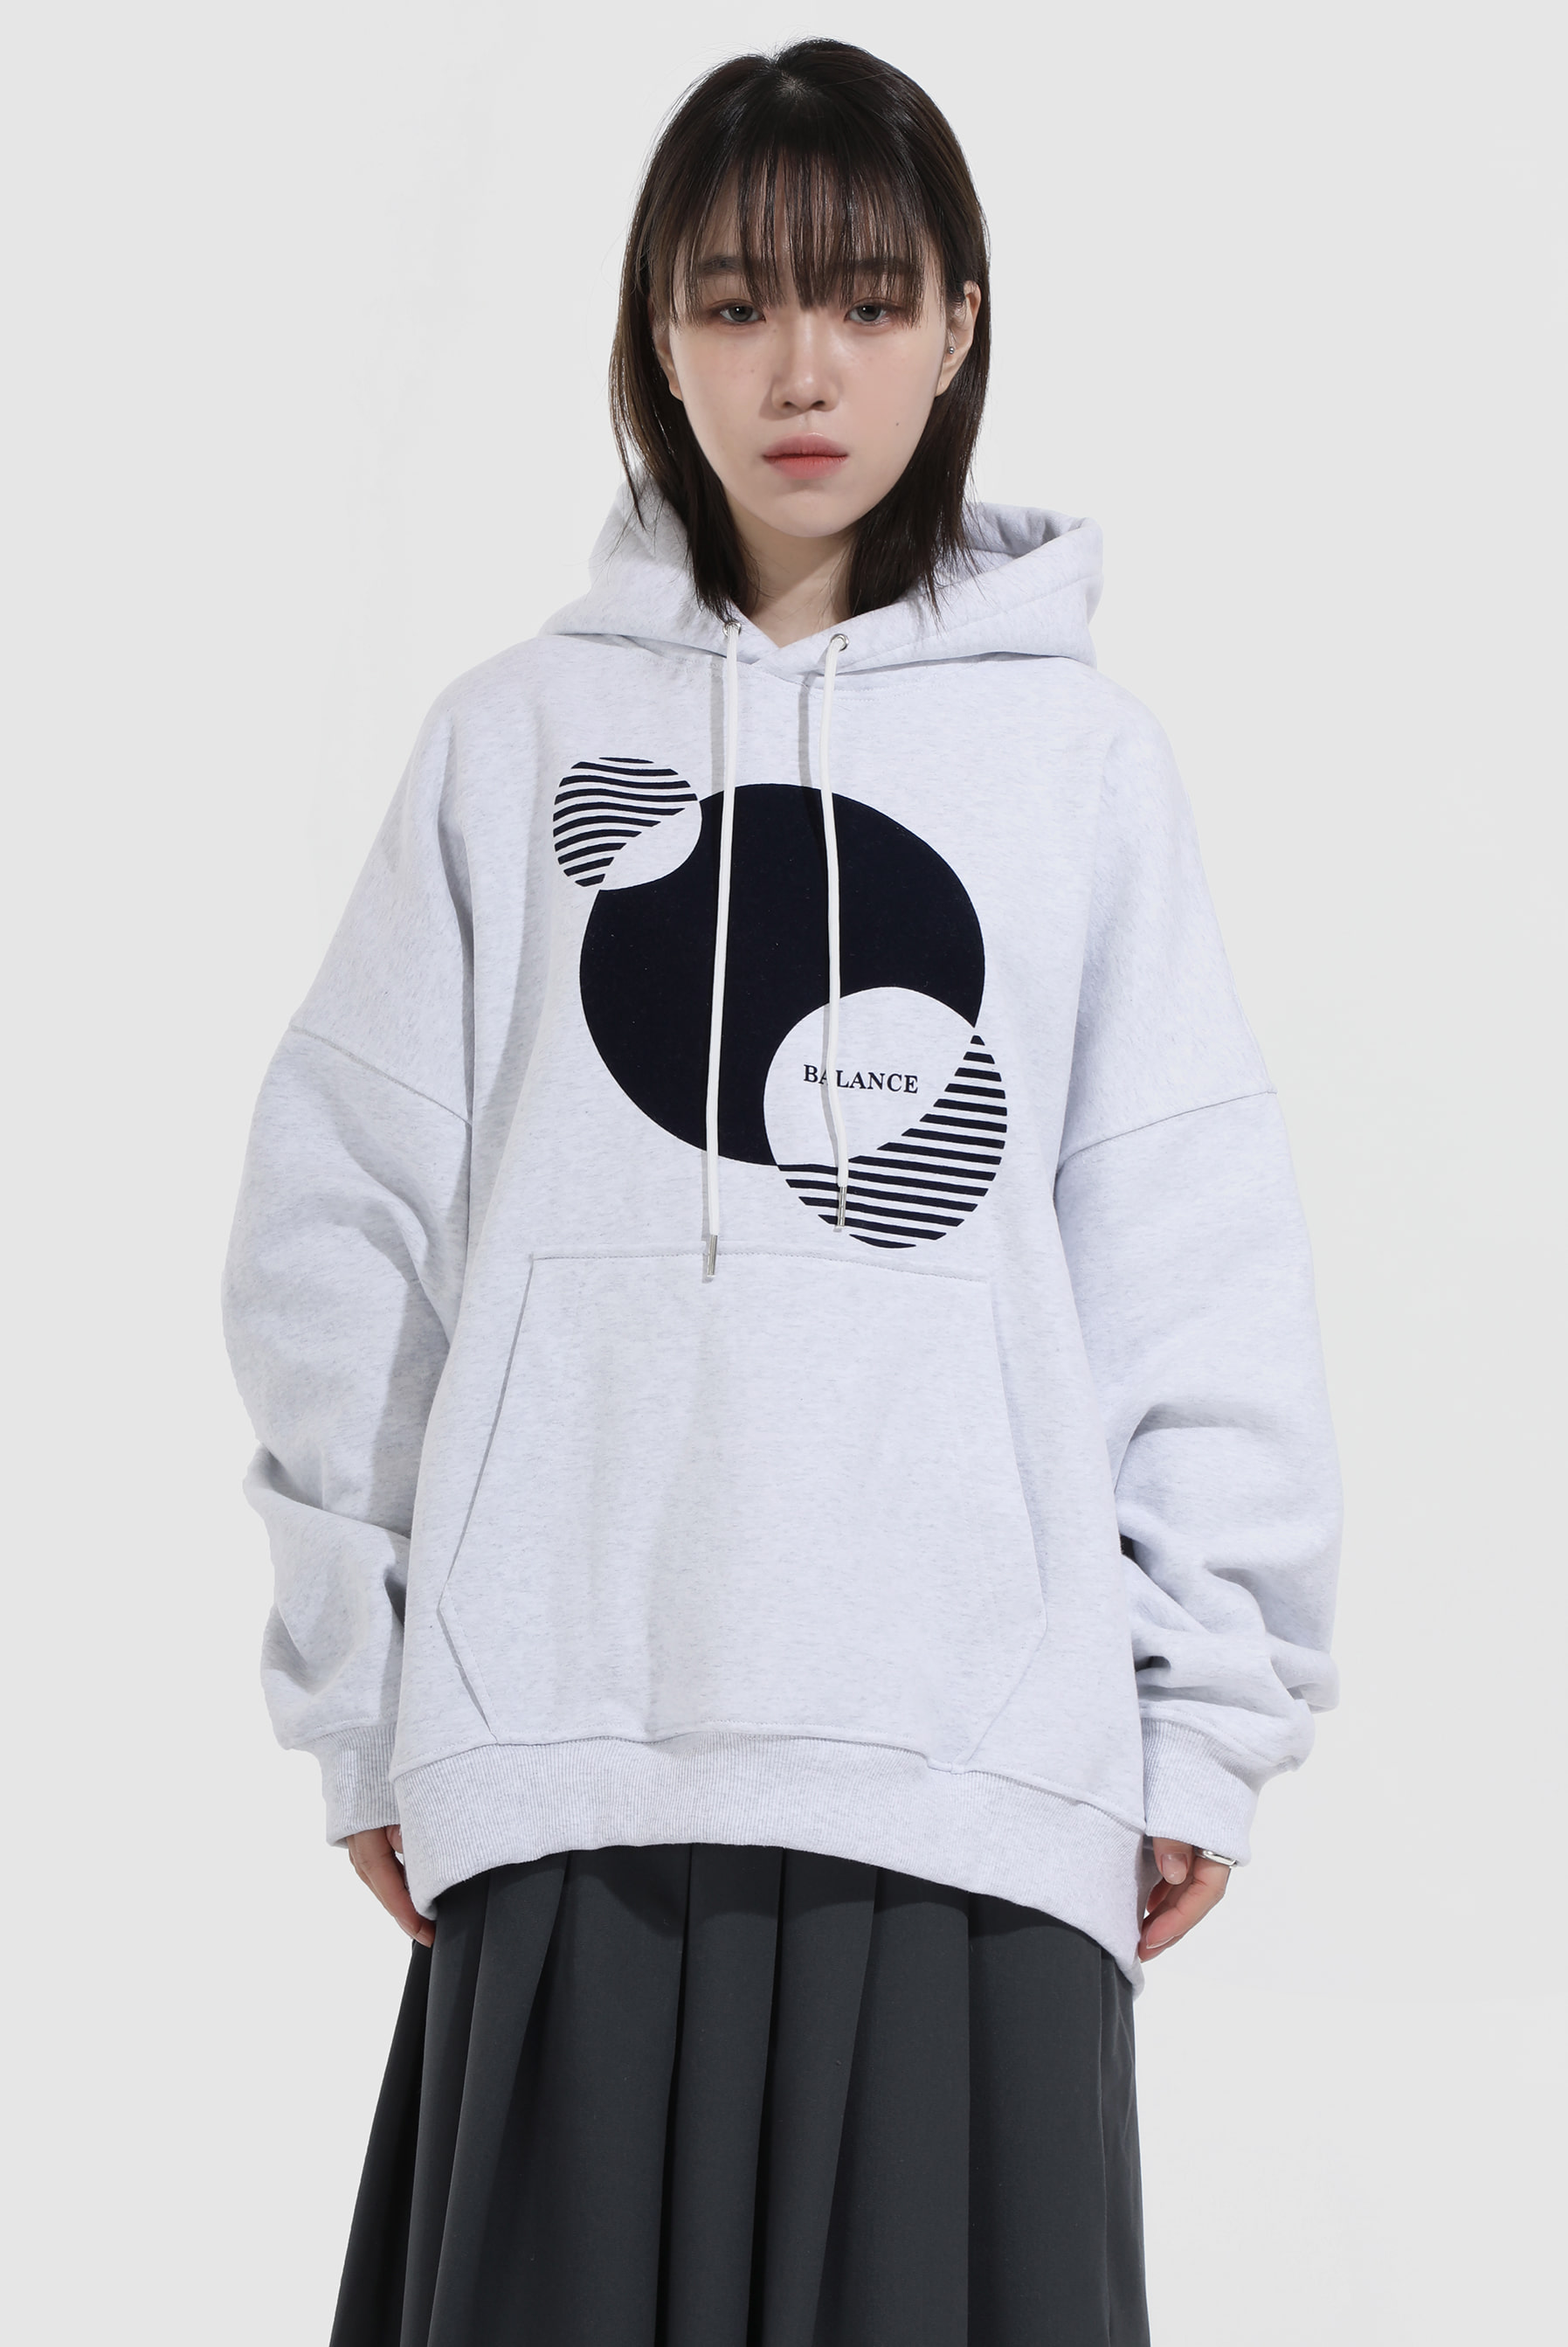 Blance Logo Over_Hoodie